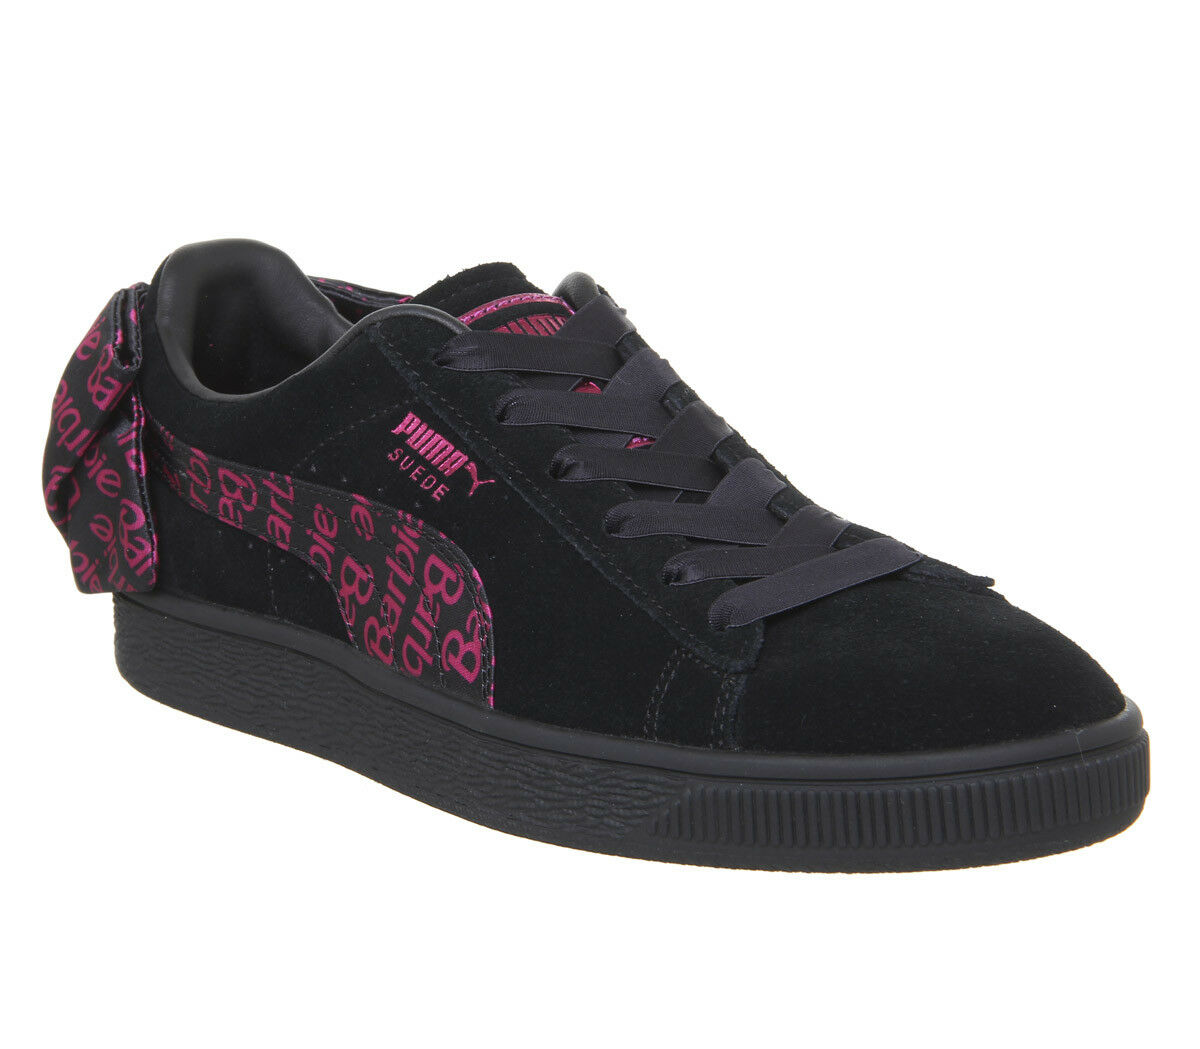 Womens Puma Suede Classic Trainers Barbie Team gold Black Trainers shoes